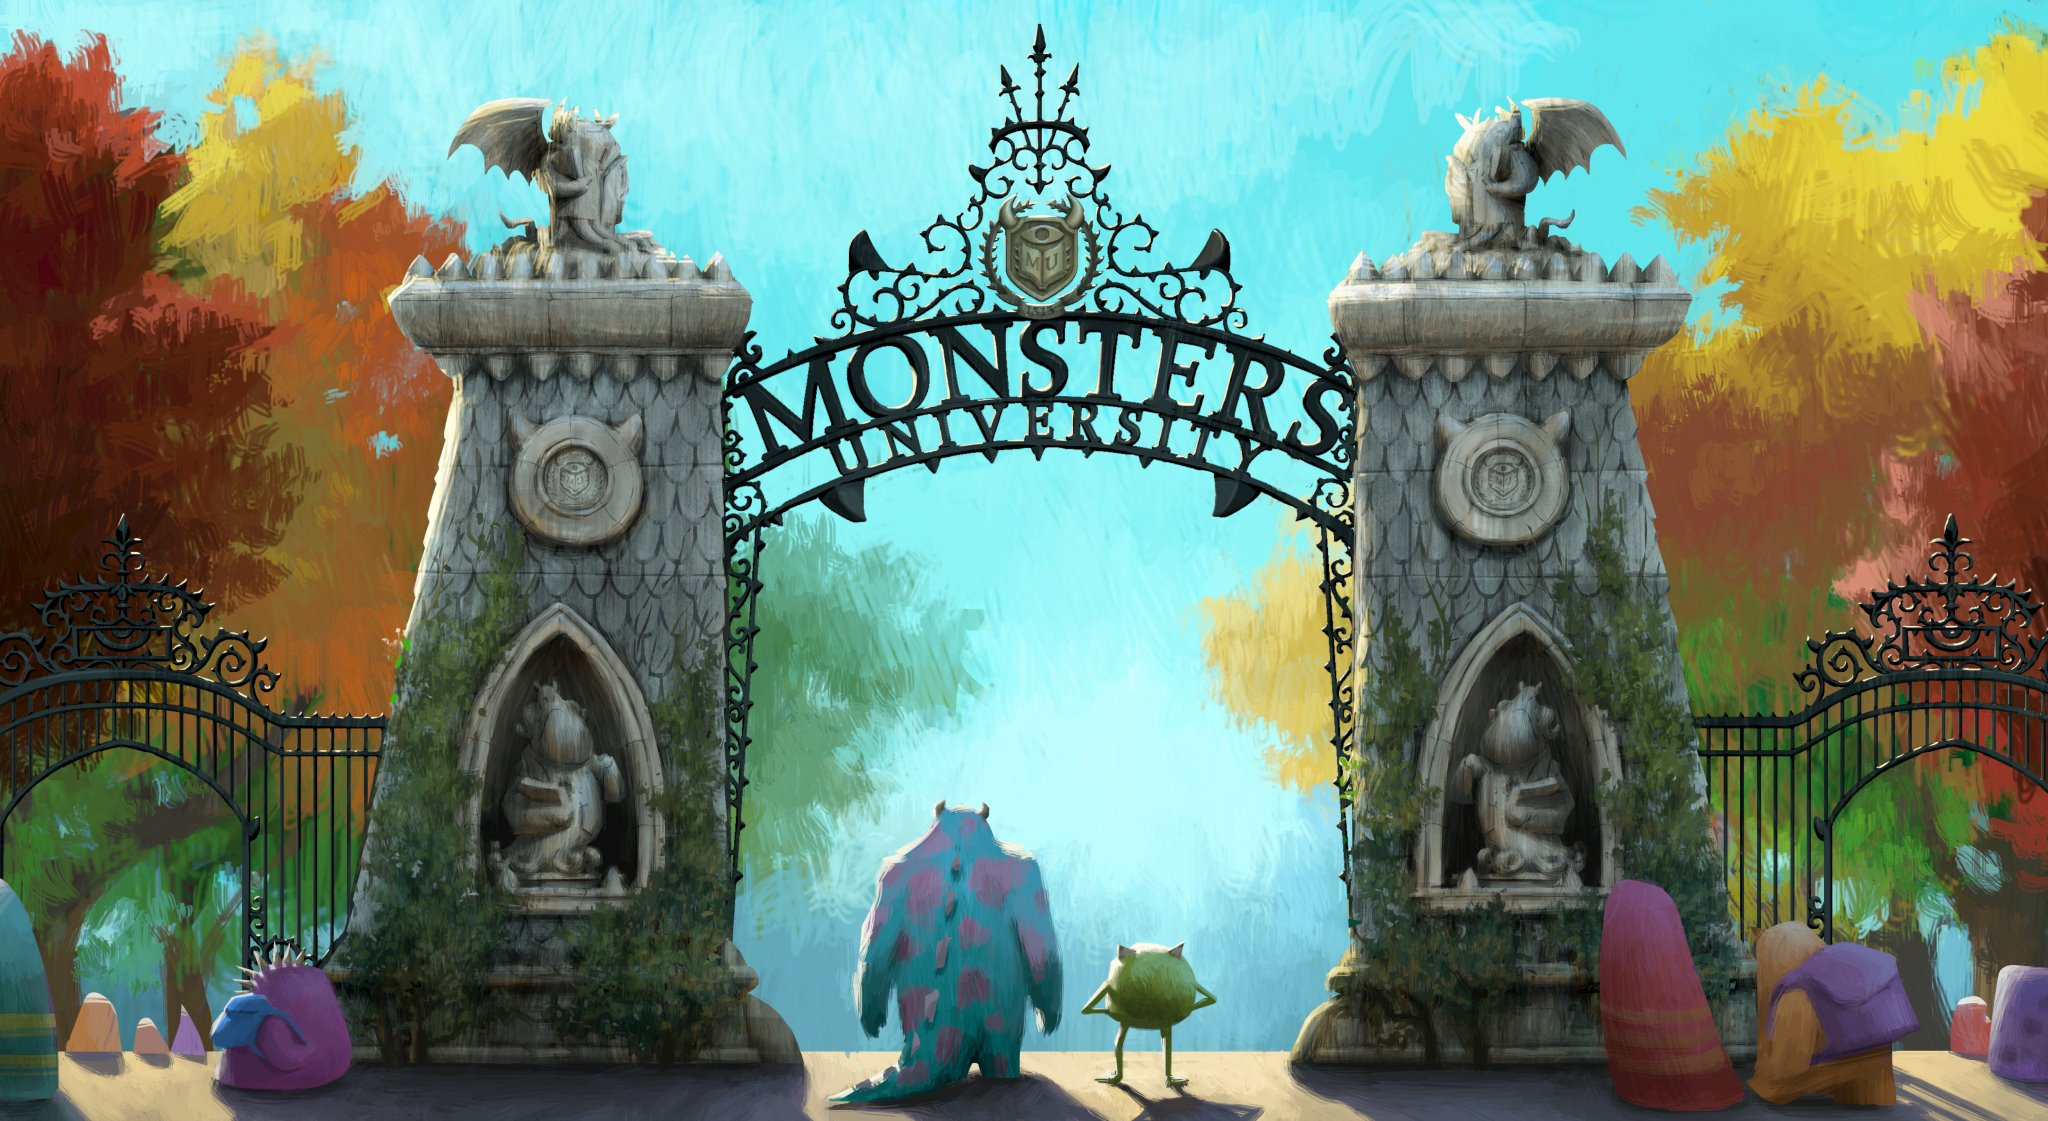 Watch: 'Monsters University' Featurette Details Plot, Features New Footage and Concept Art